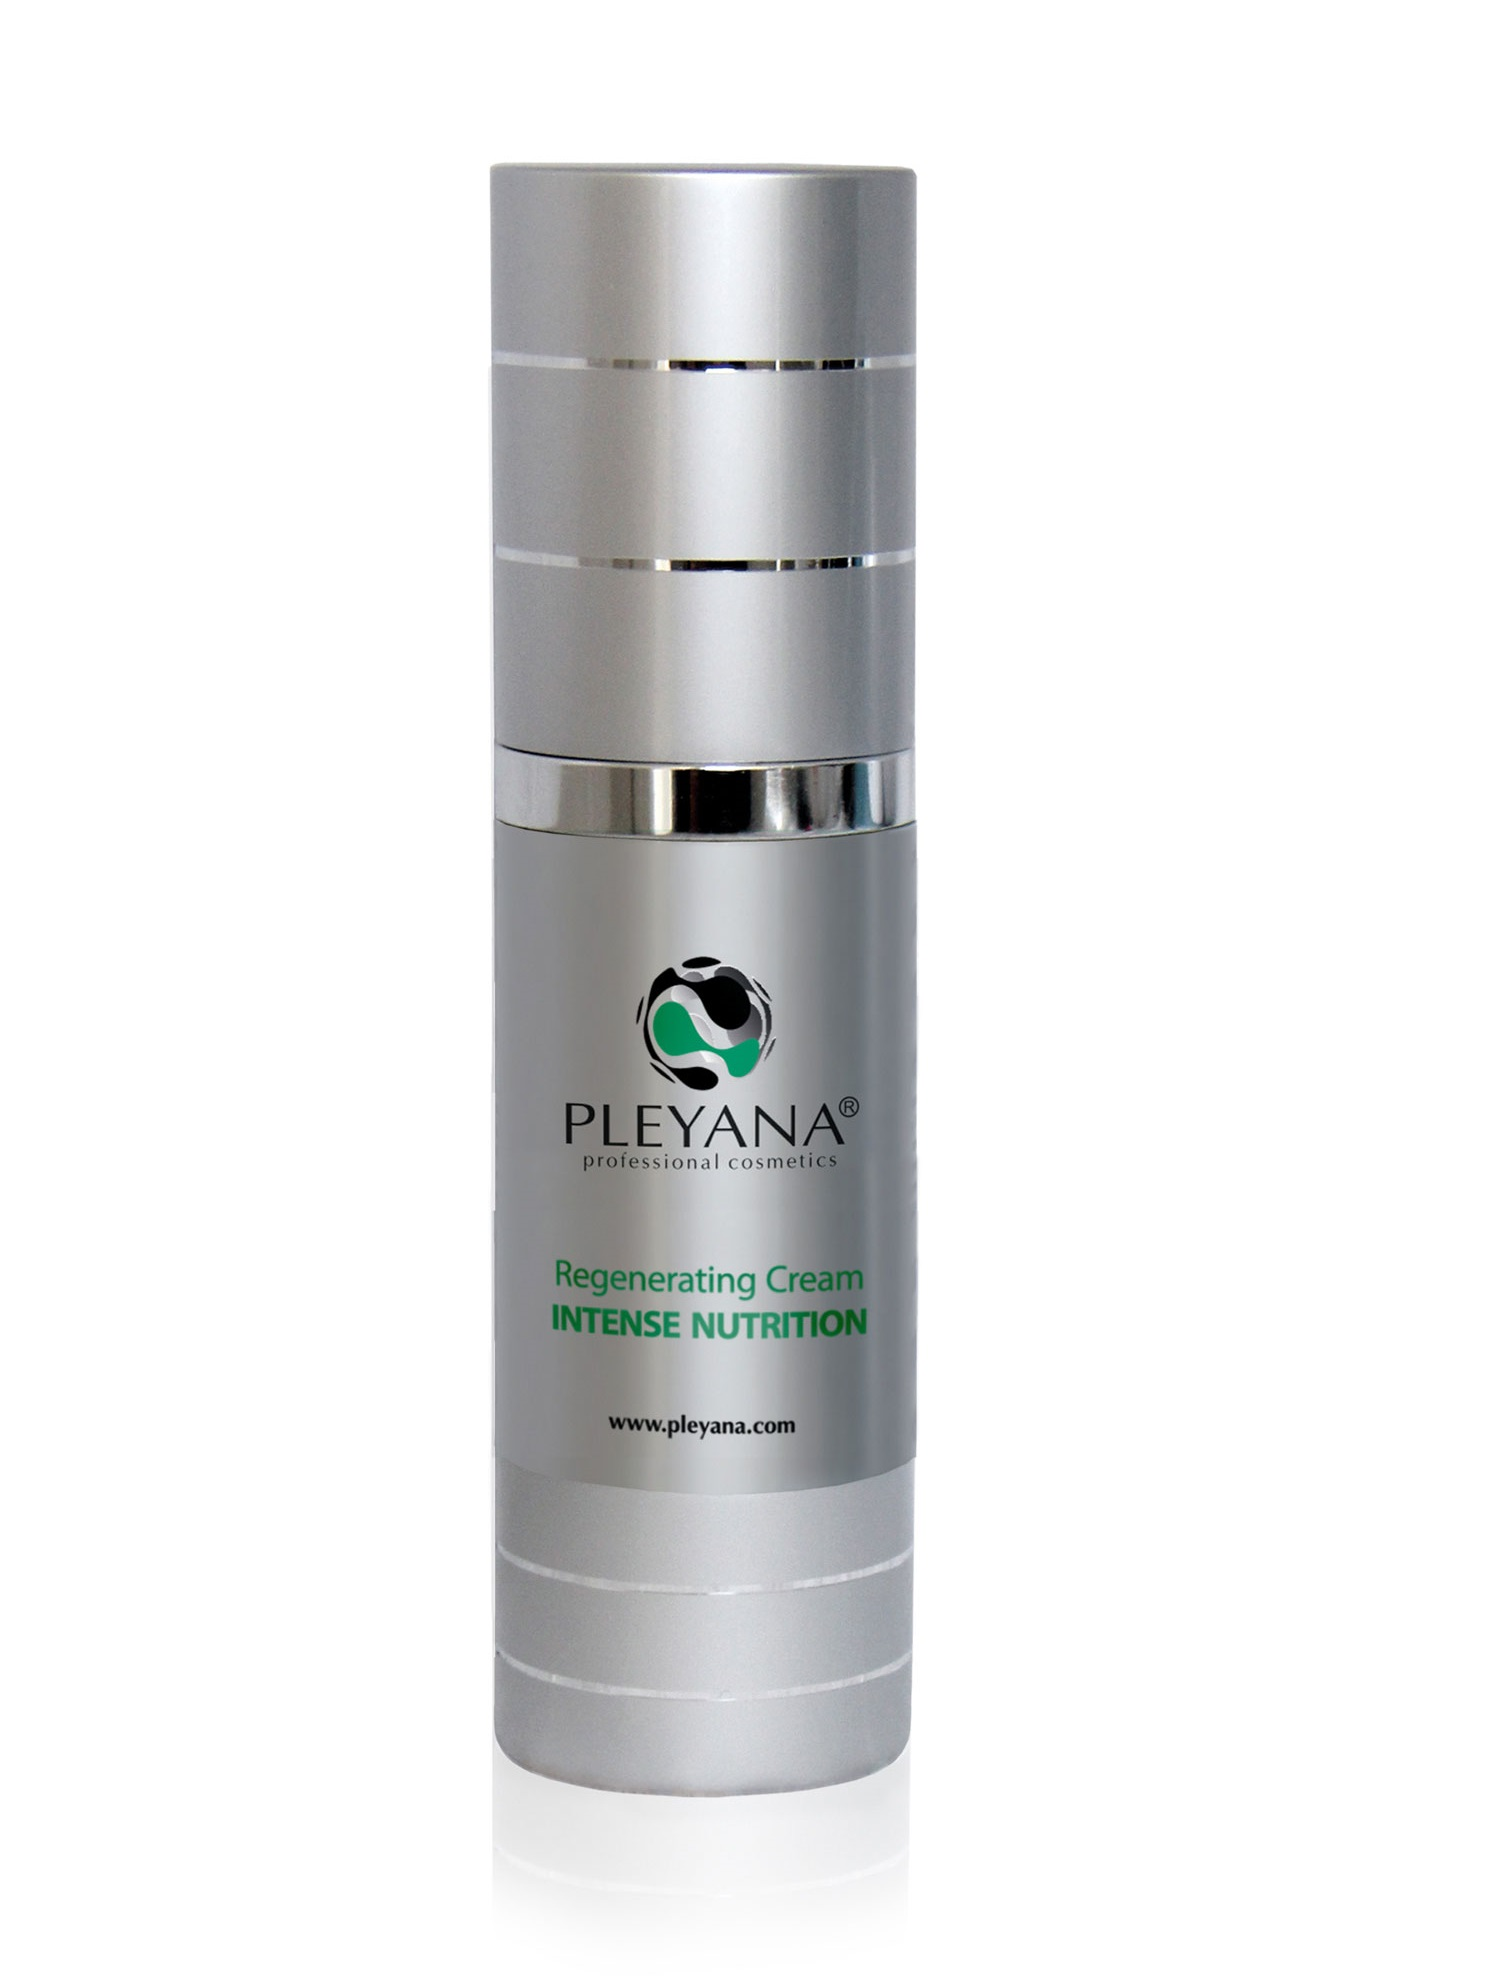 Базовый крем с фитоэстрогенами Pleyana Regenerating Cream Intense Nutrition